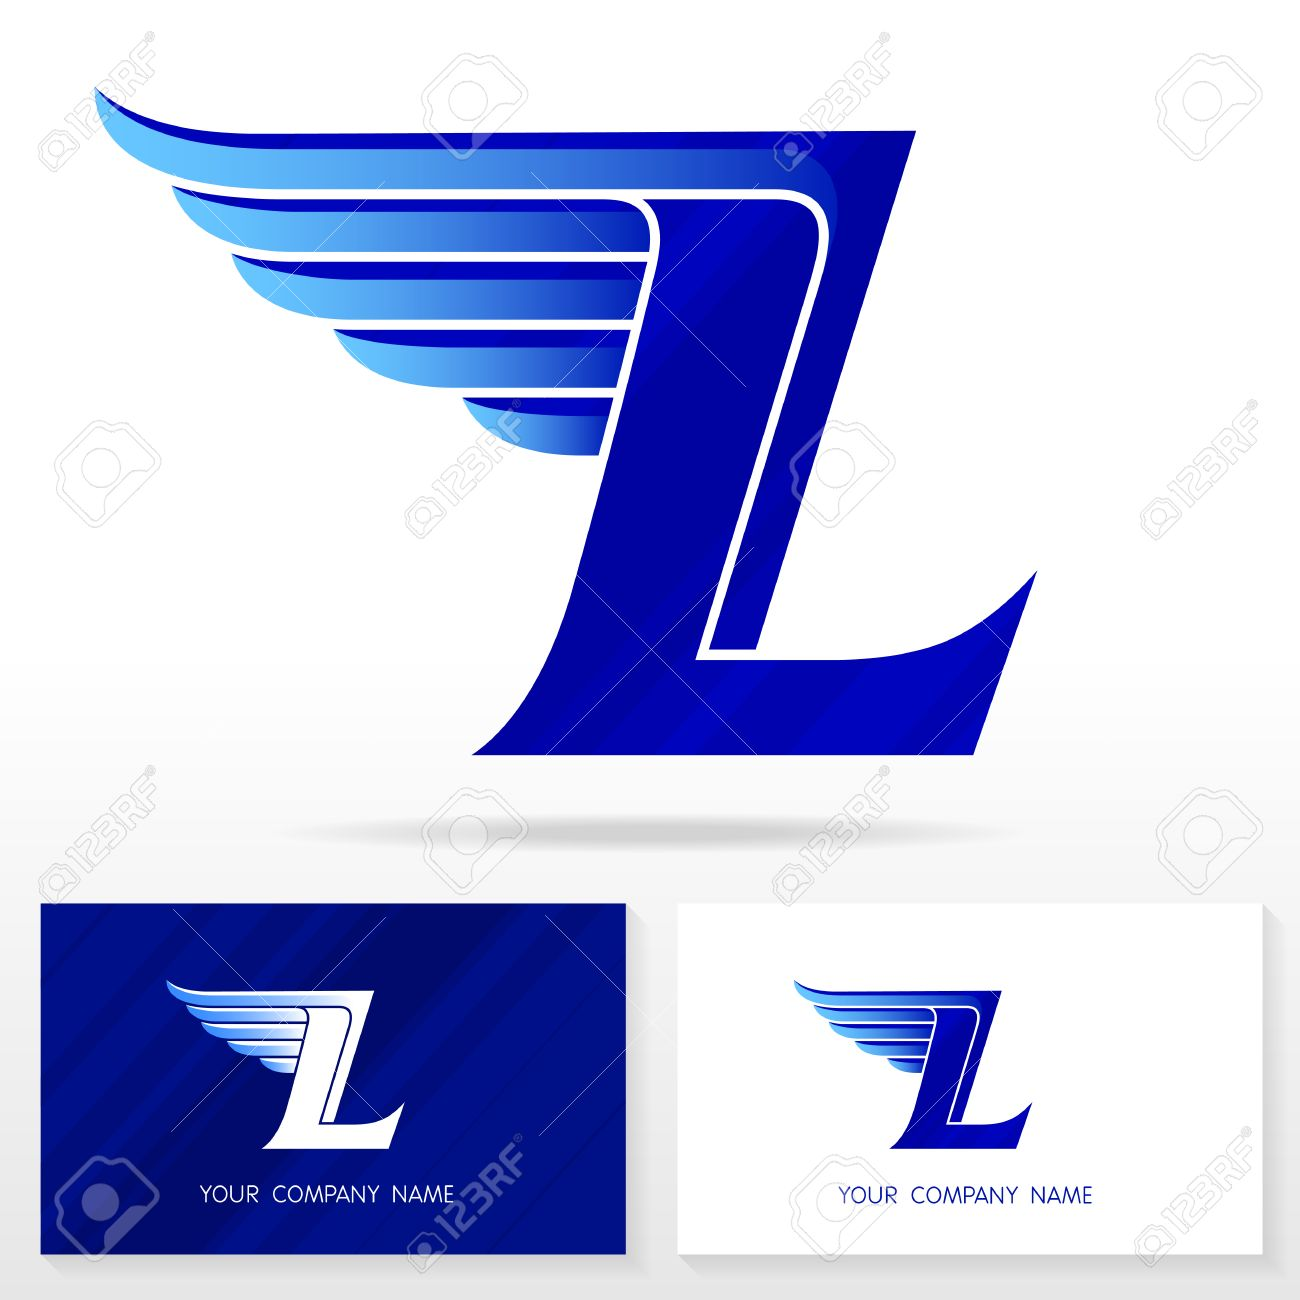 Letter l logo design business vector sign business card templates letter l logo design business vector sign business card templates stock vector reheart